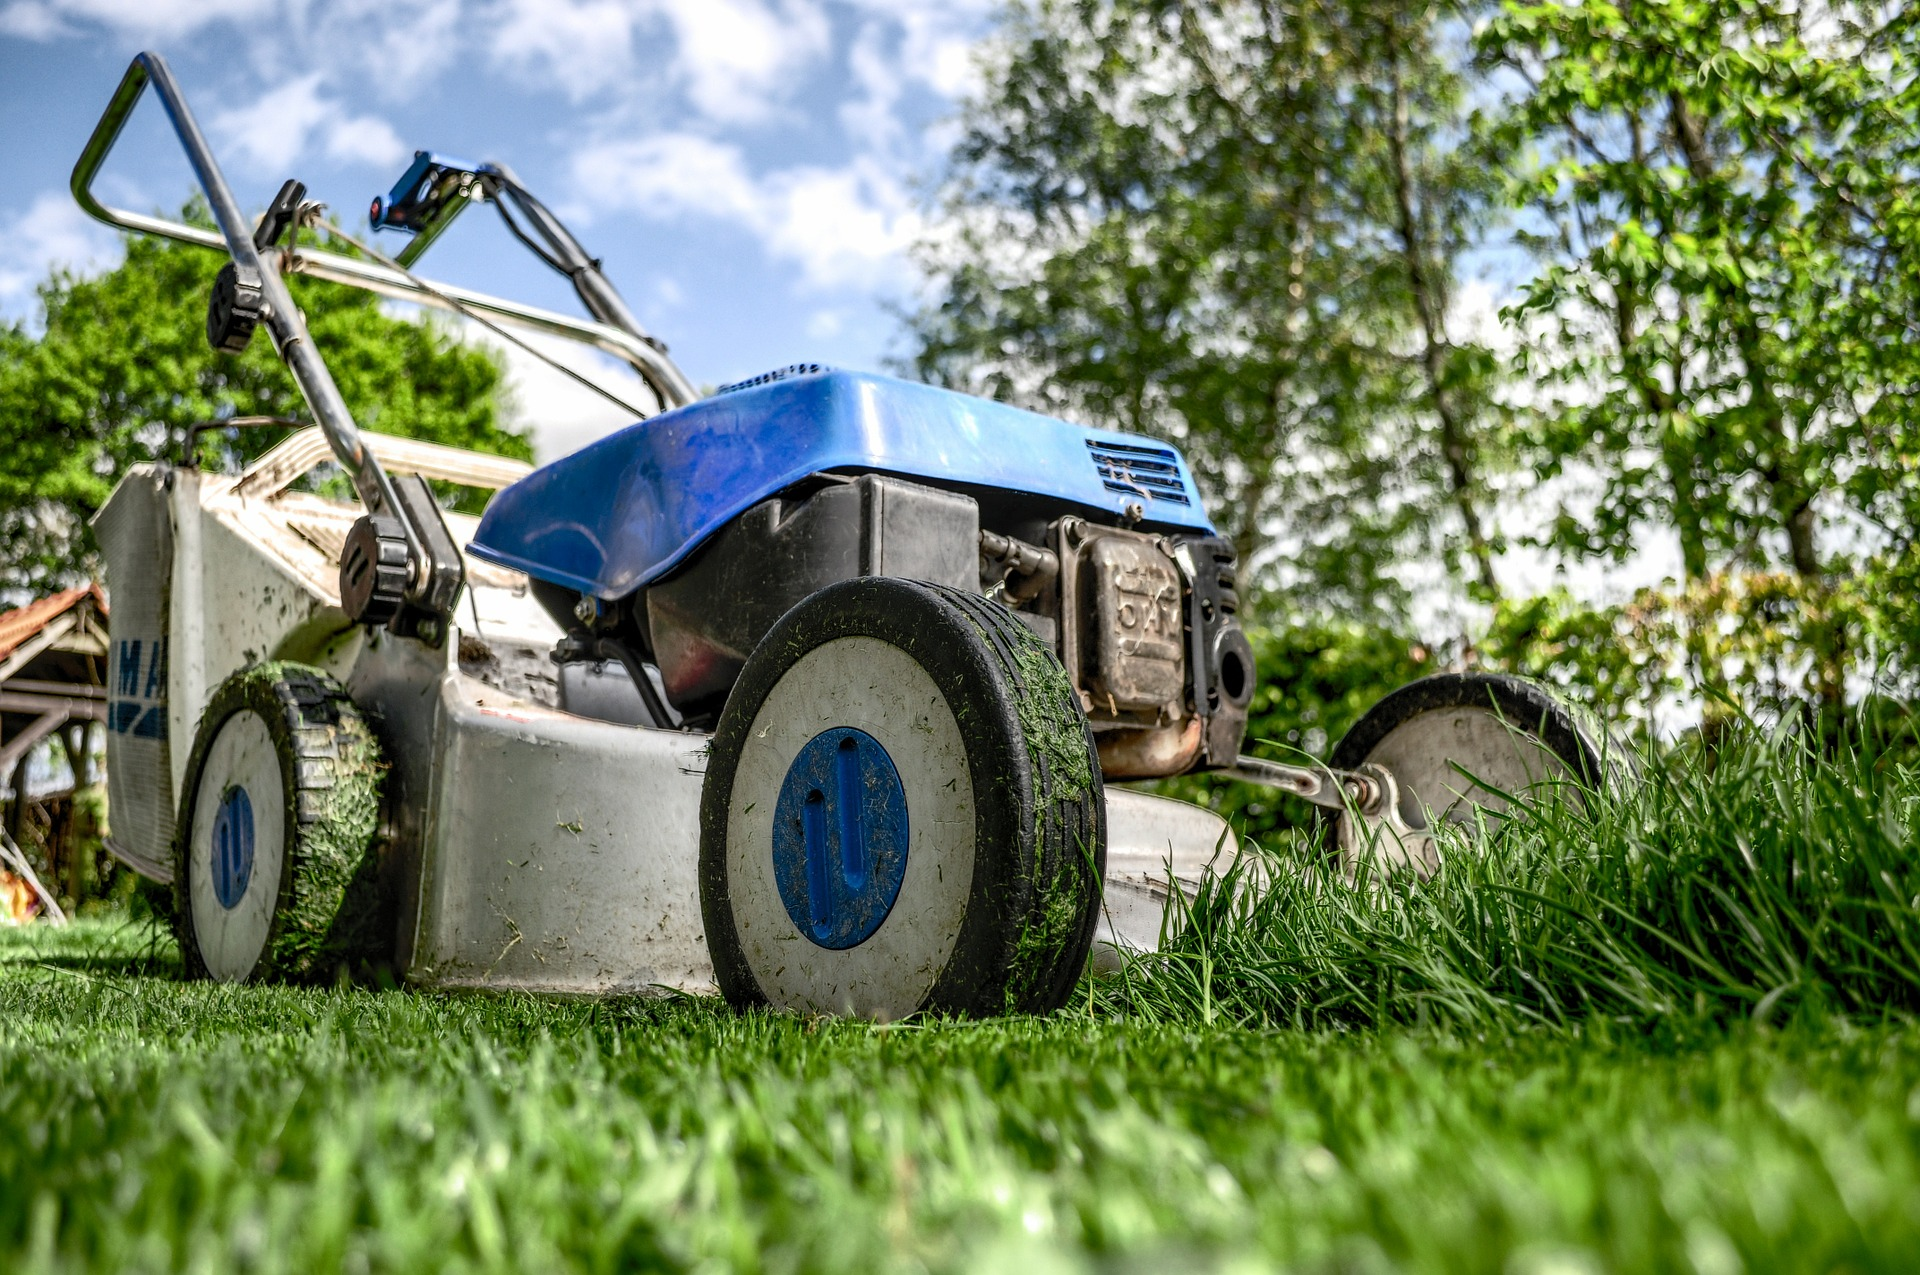 Image of a lawnmower